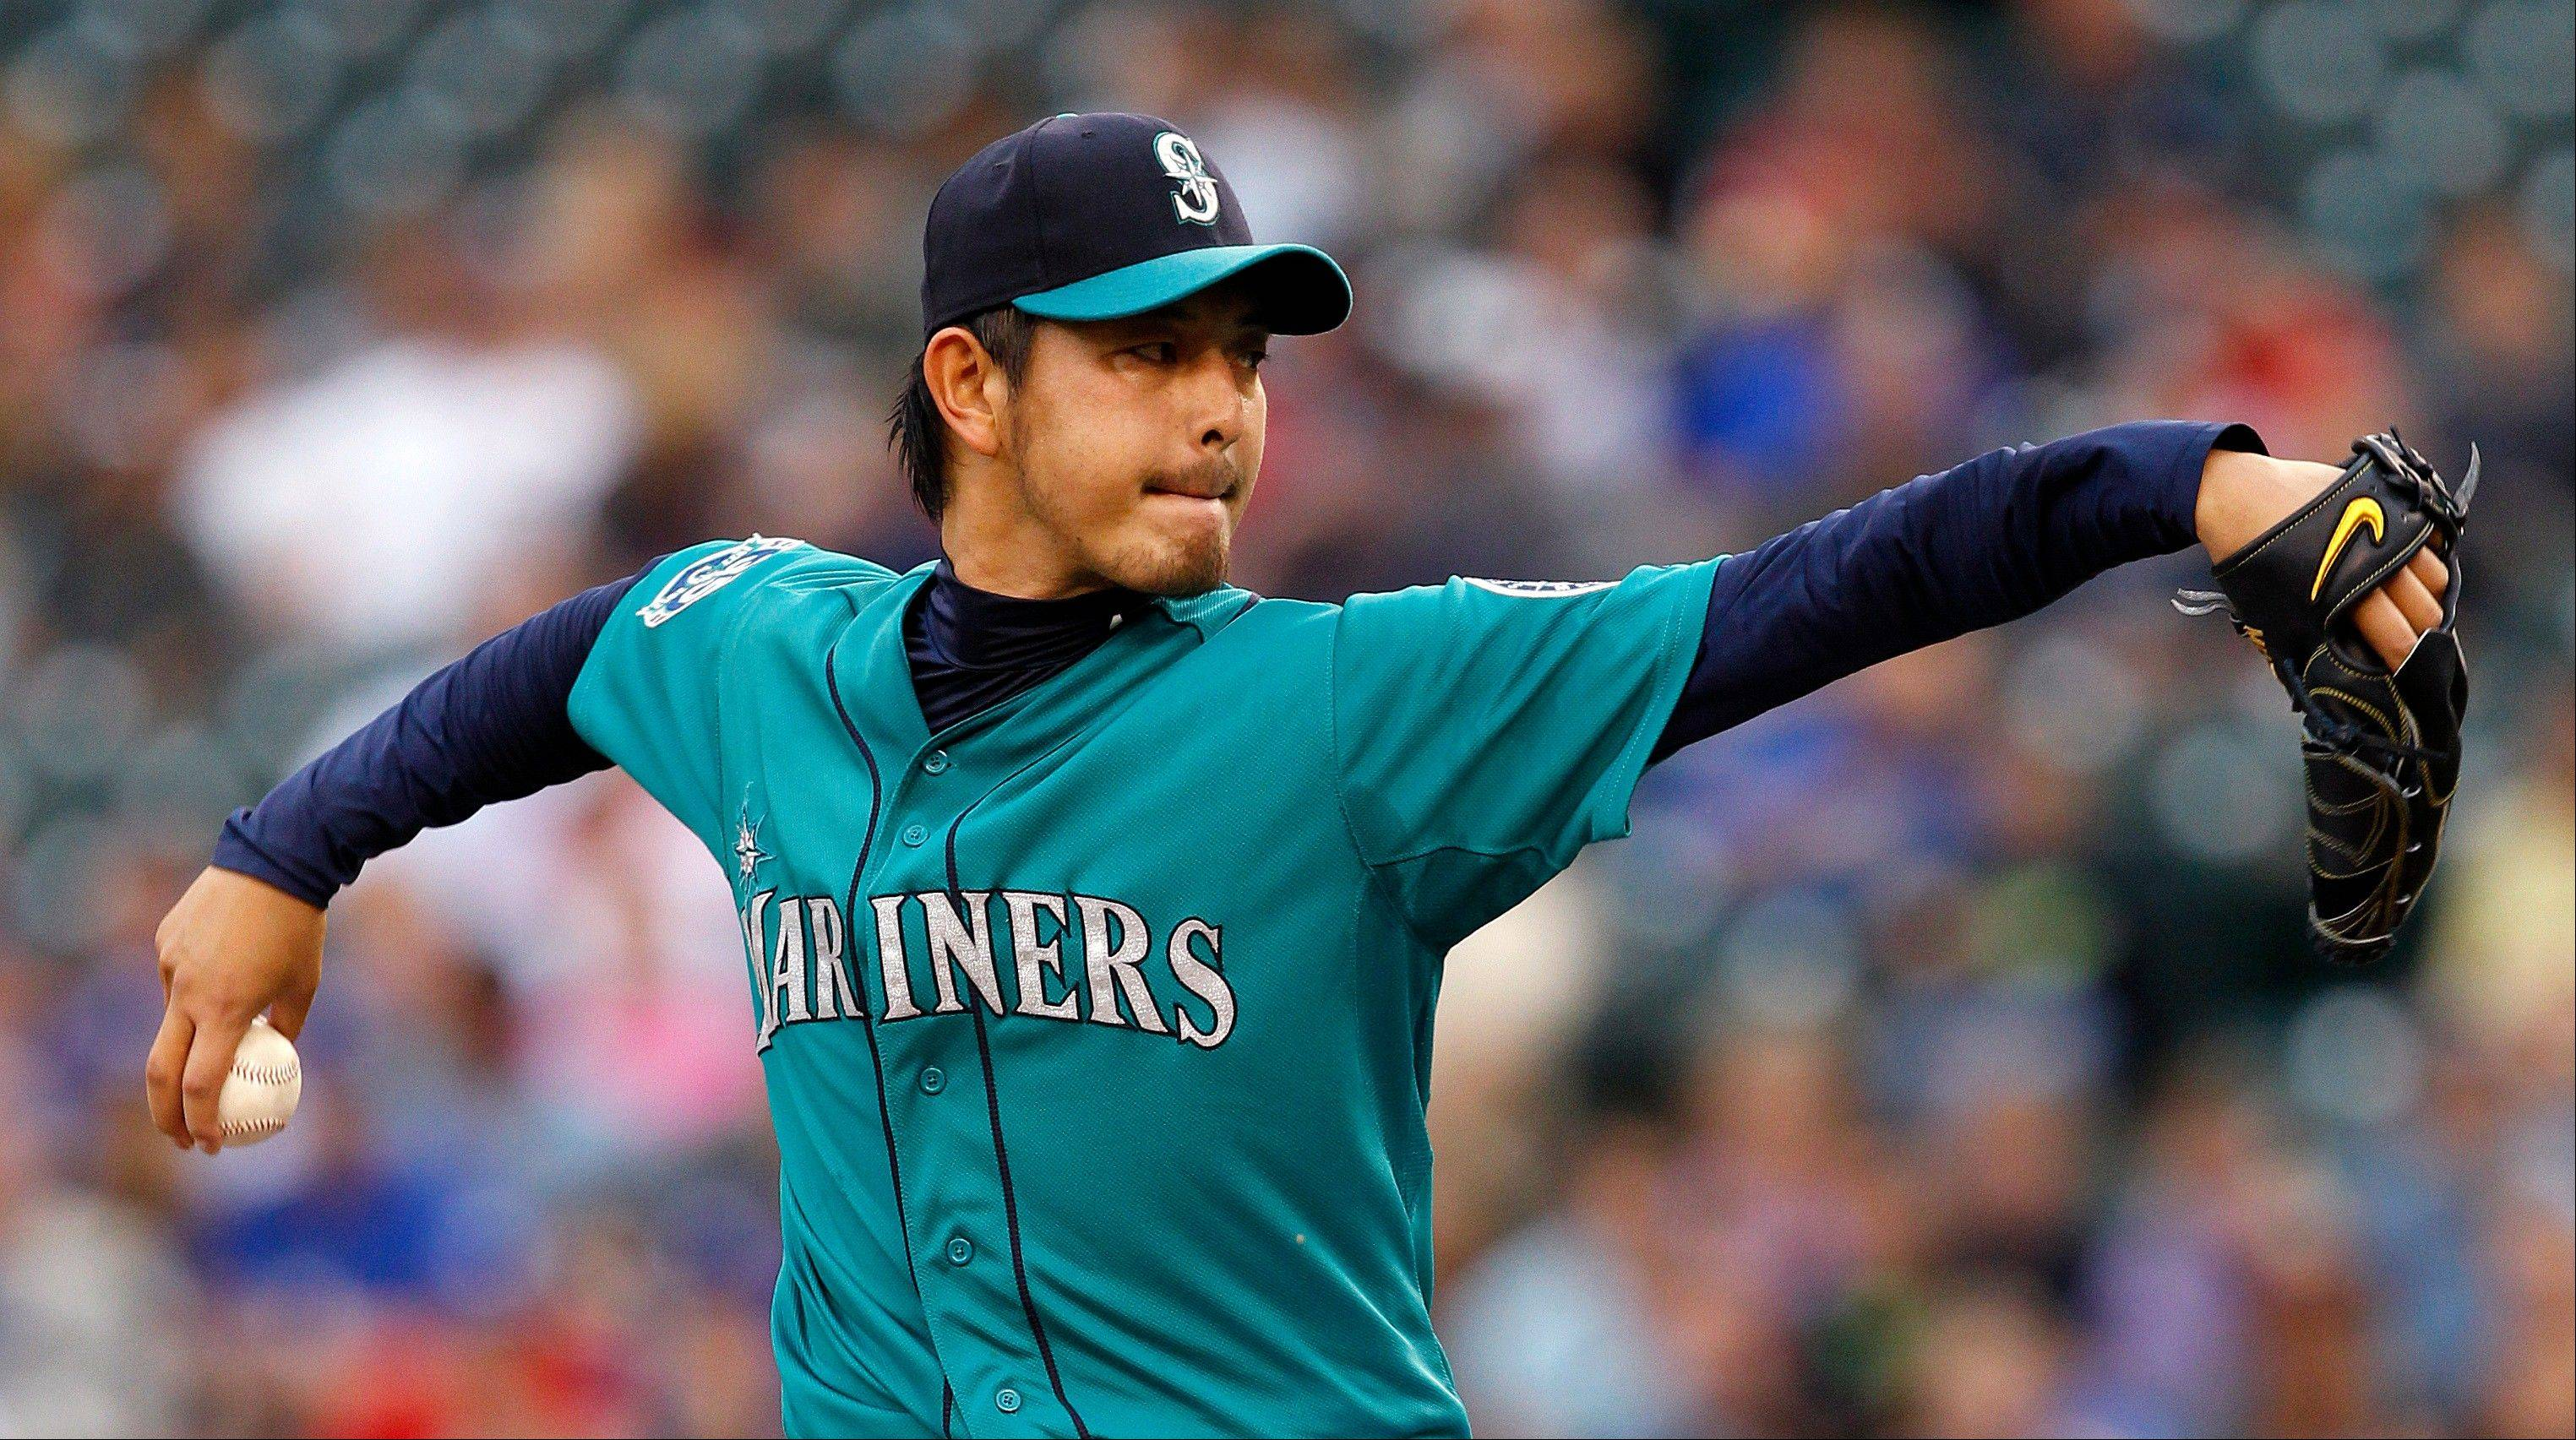 Pitcher Hisashi Iwakuma�s 13 strikeouts Monday night against the Blue Jays broke the Mariners rookie record of 12 previously shared by Mark Langston, Randy Johnson and Freddy Garcia.